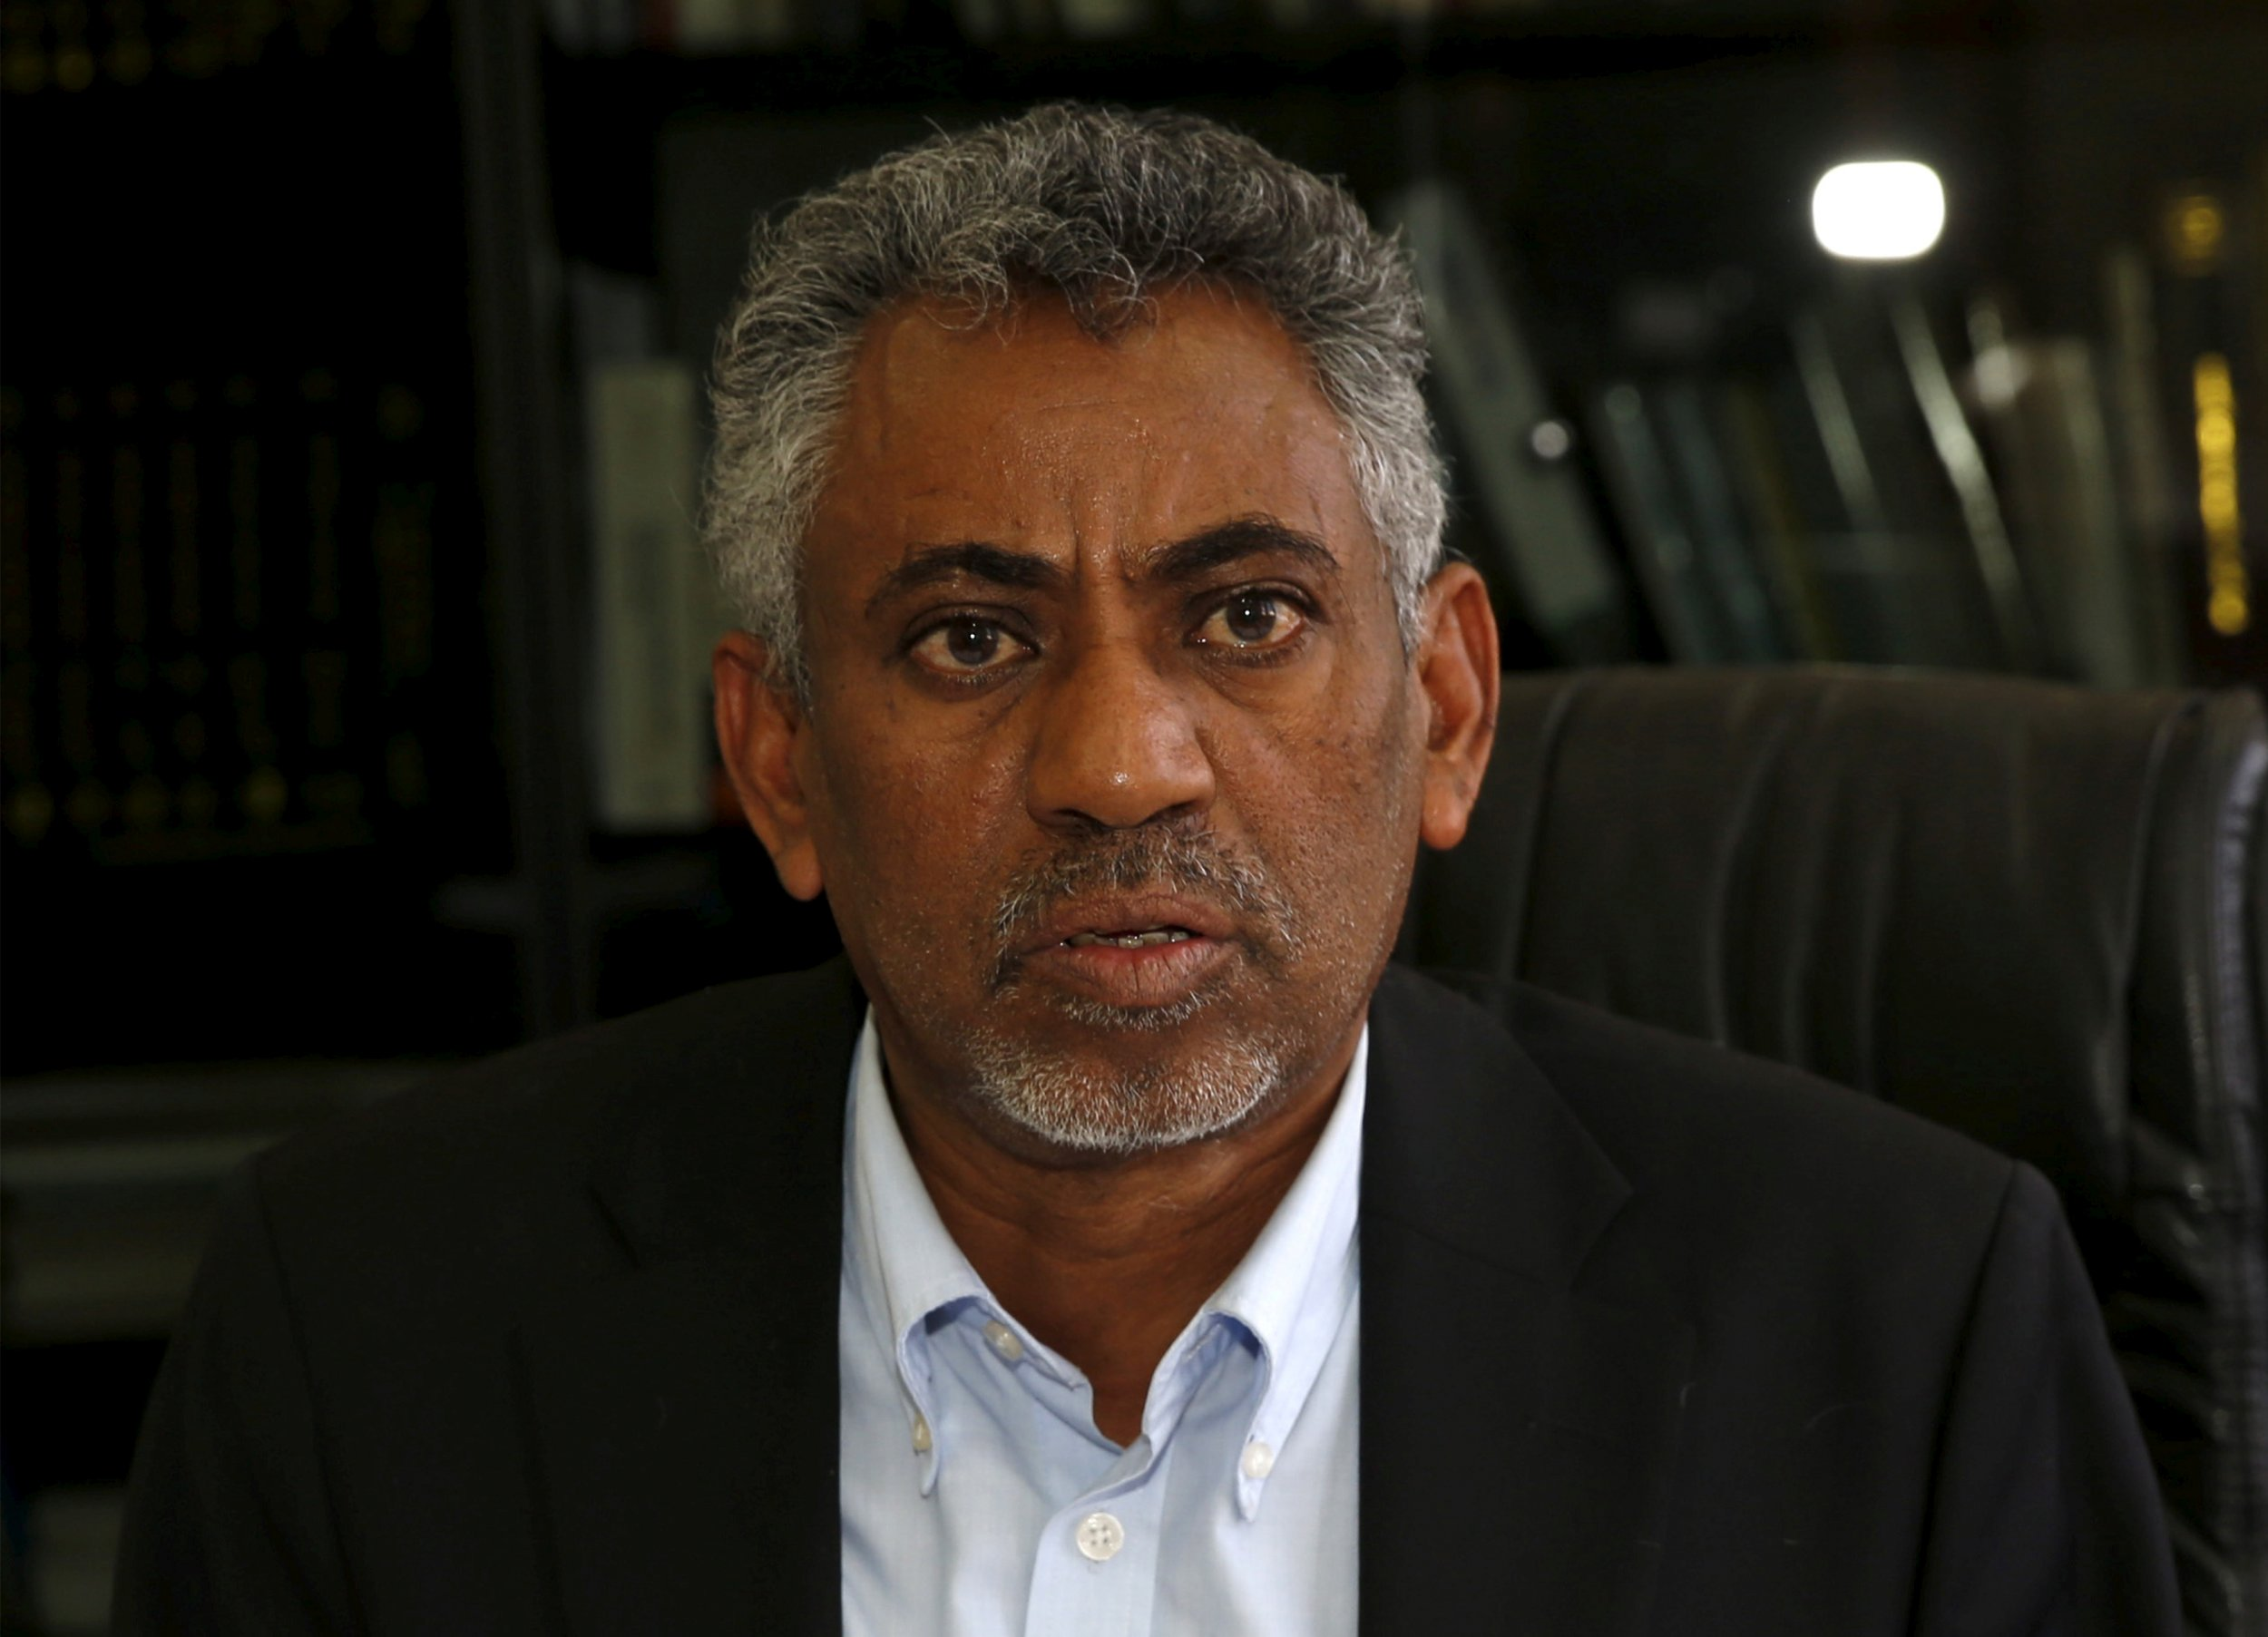 Eritrea information minister